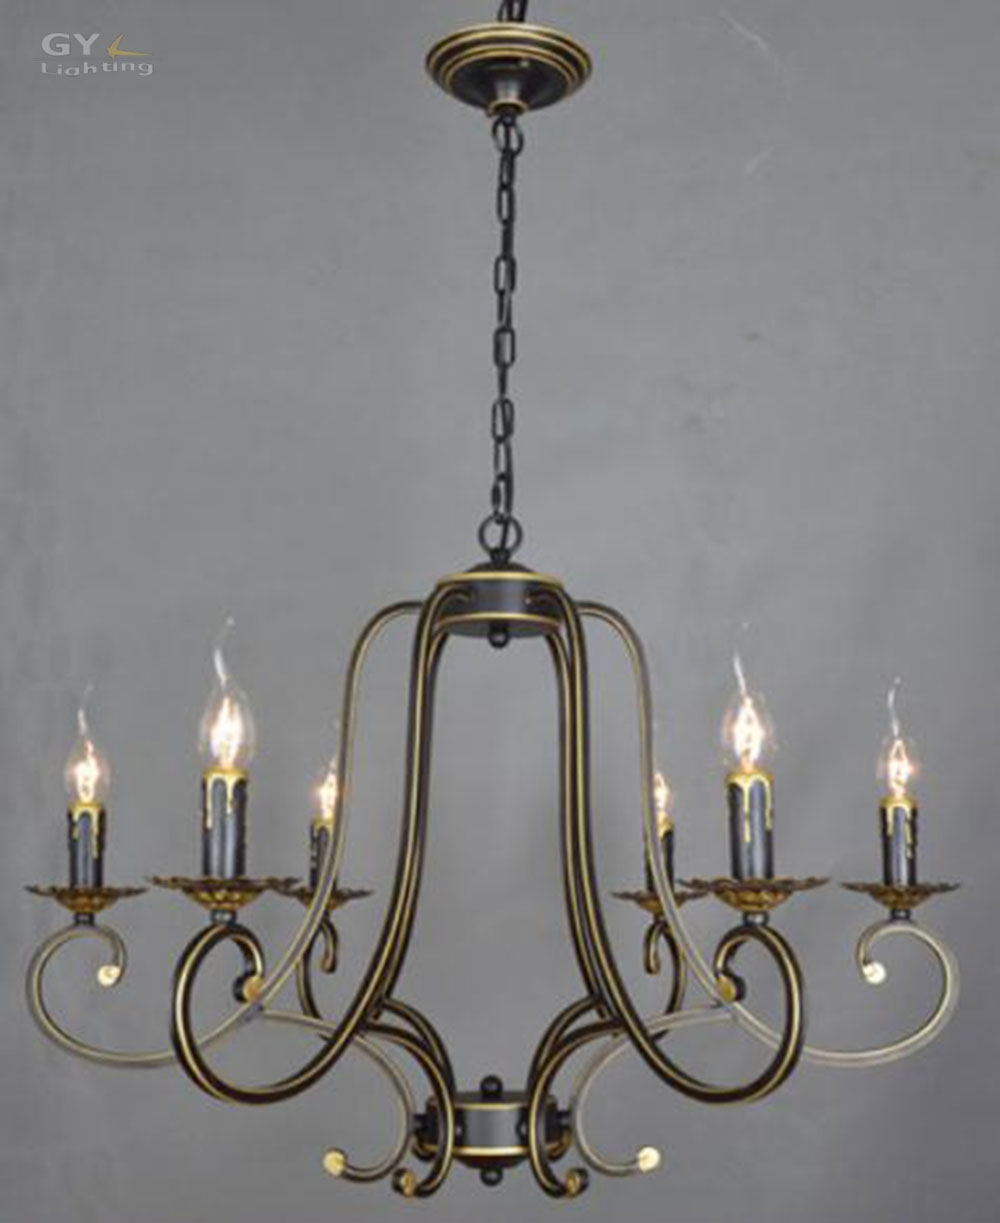 Popular Wrought Iron Candle Chandelier Buy Cheap Wrought Iron In Metal Ball Candle Chandeliers (Image 23 of 25)